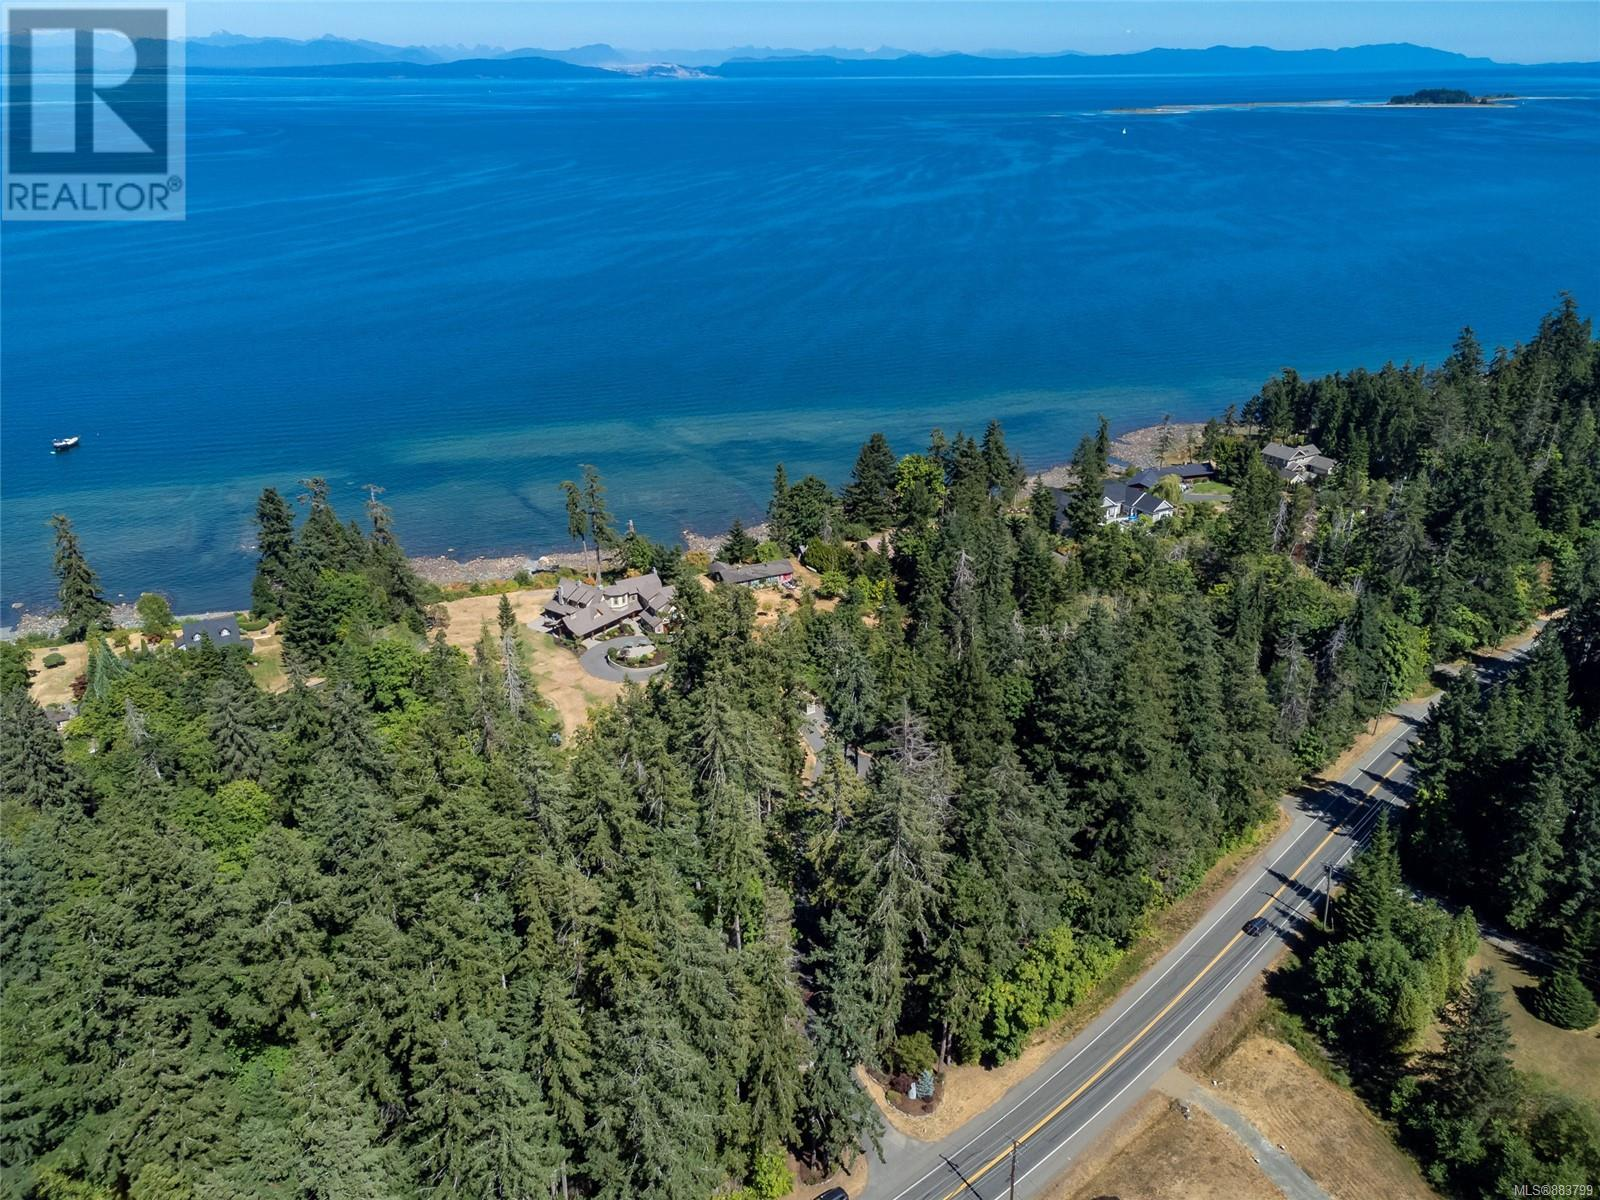 MLS® #883799 - Courtenay House For sale Image #95